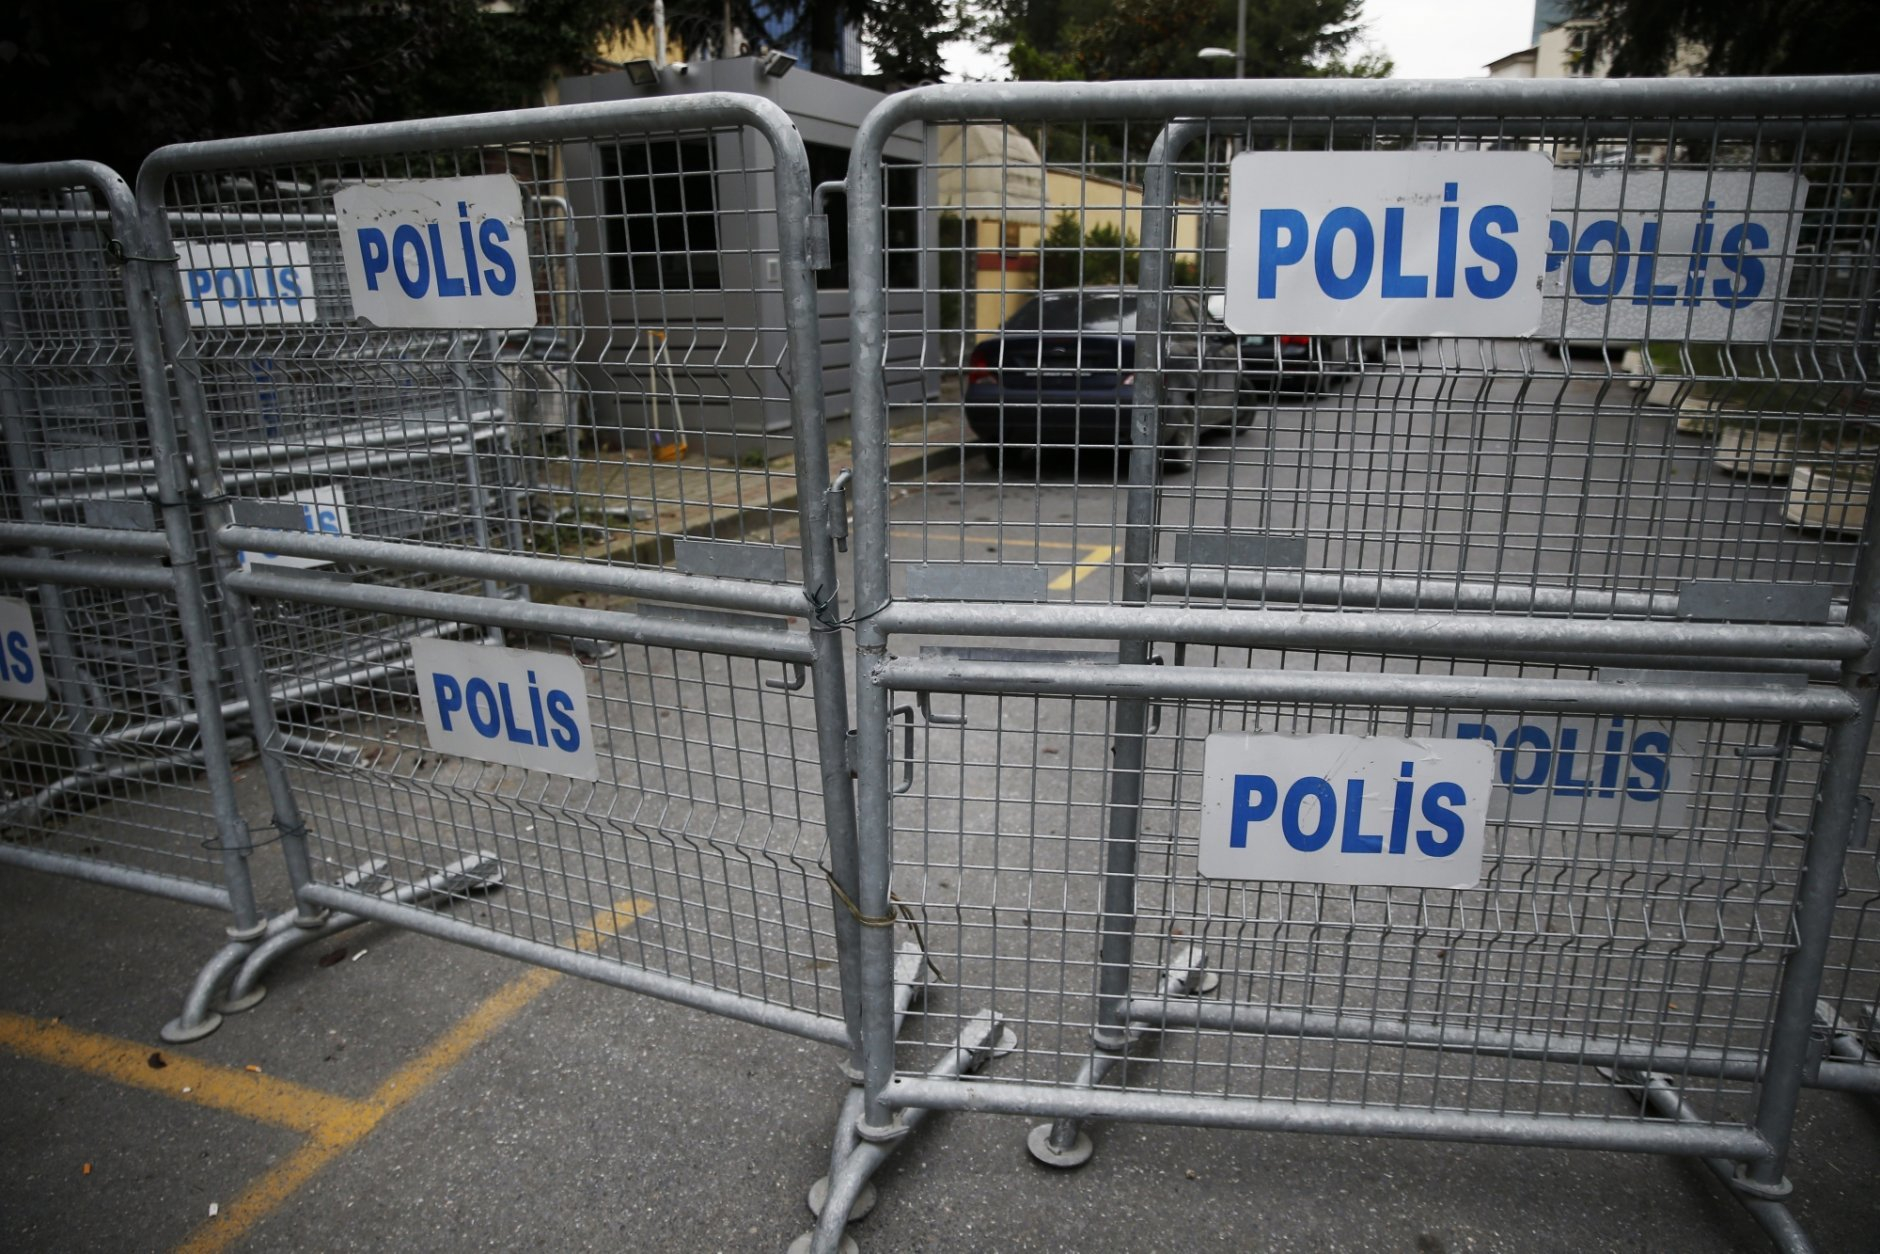 """Barriers block the road leading to Saudi Arabia's consulate in Istanbul, Saturday, Oct. 20, 2018. Saudi Arabia claims Saudi journalist Jamal Khashoggi died in a """"fistfight"""" in consulate, finally admitting that the writer had been slain at its diplomatic post. The overnight announcements in Saudi state media came more than two weeks after Khashoggi, 59, entered the building for paperwork required to marry his Turkish fiancée, and never came out.(AP Photo/Lefteris Pitarakis)"""